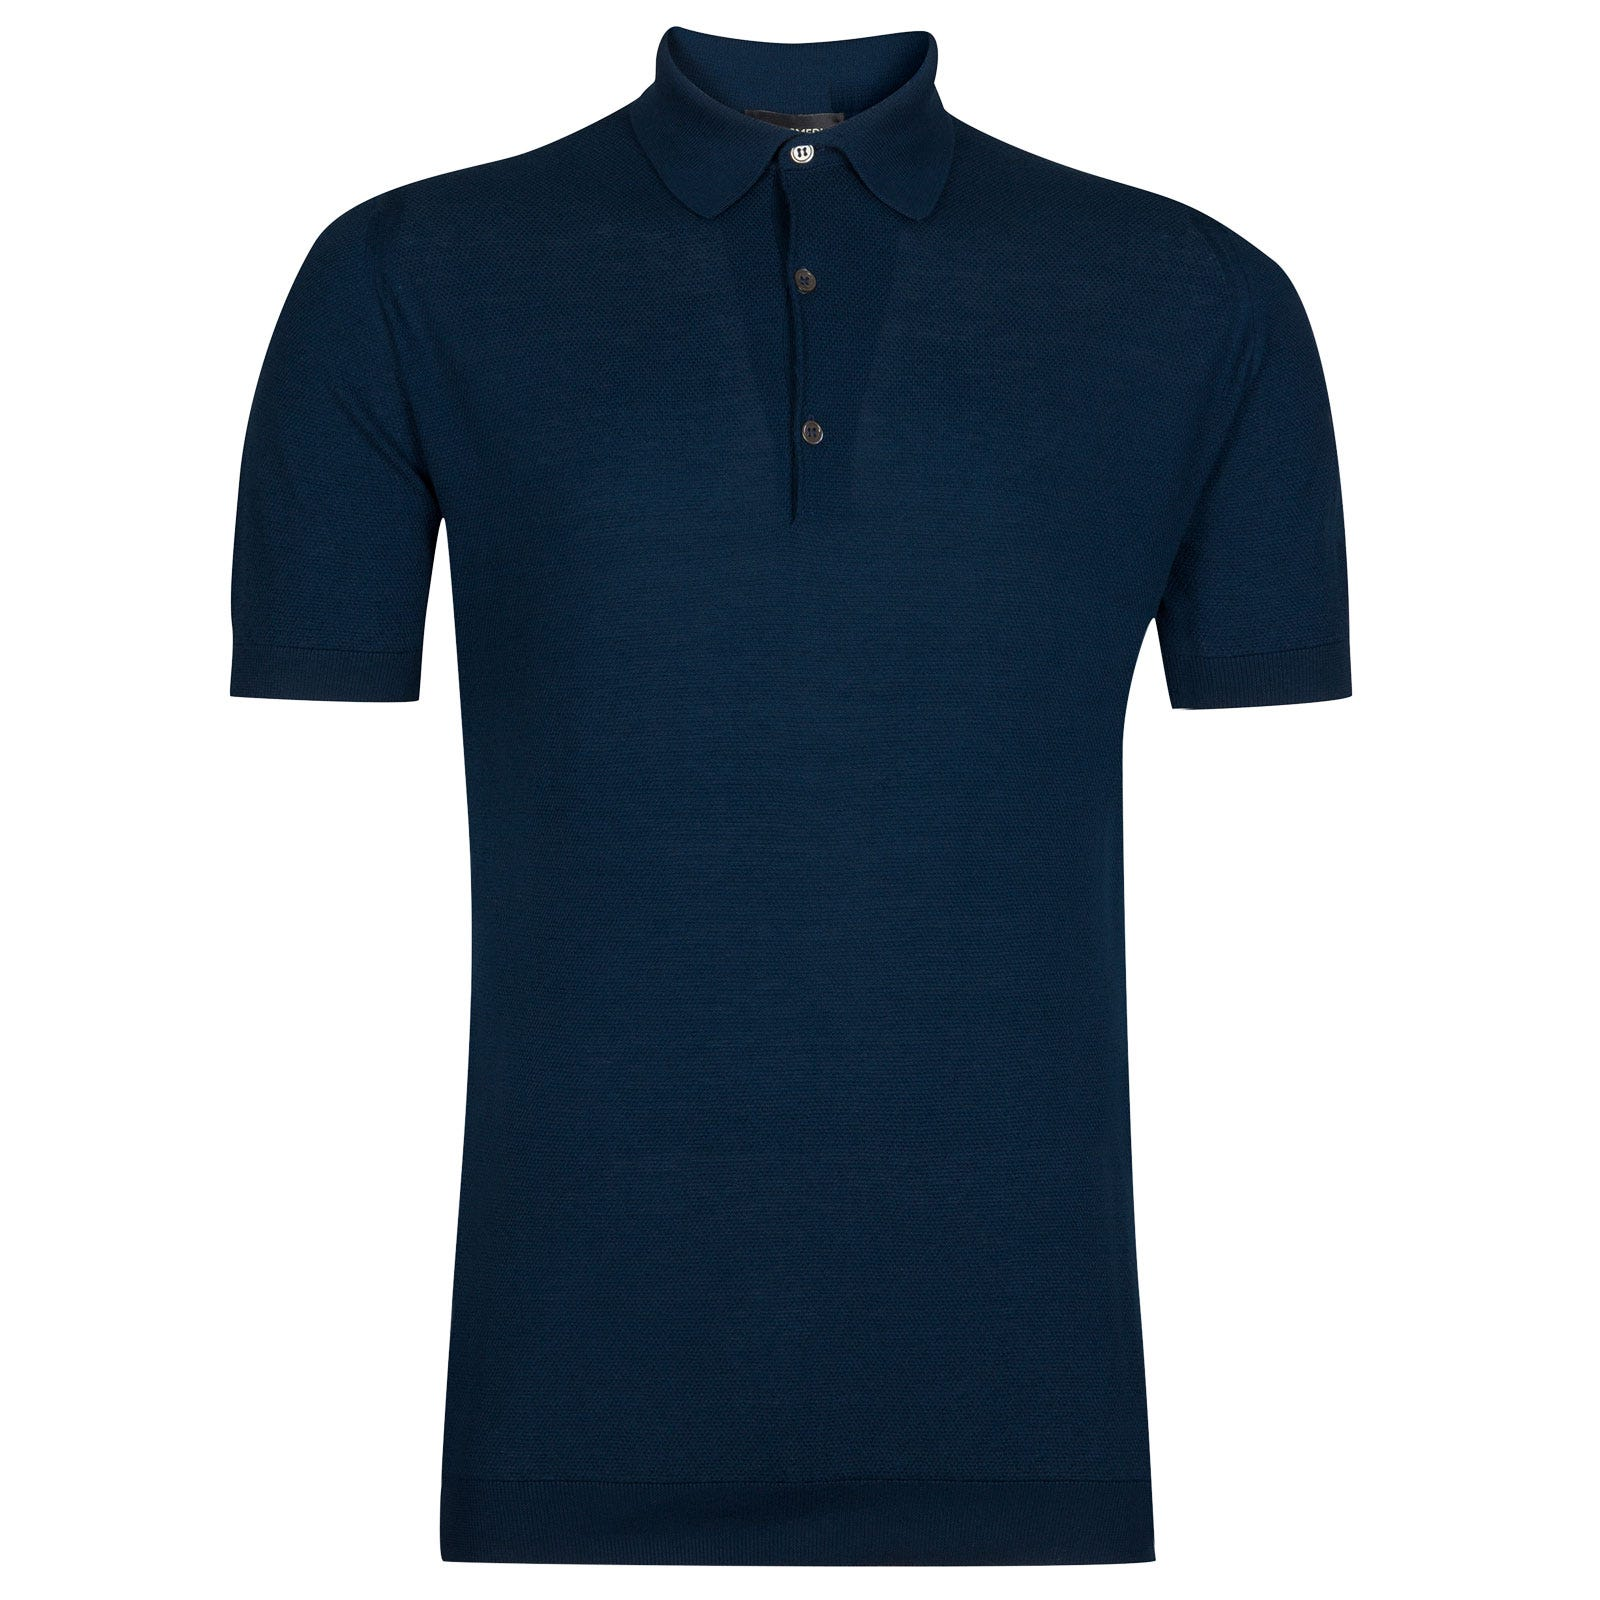 John Smedley roth Sea Island Cotton Shirt in Indigo-L